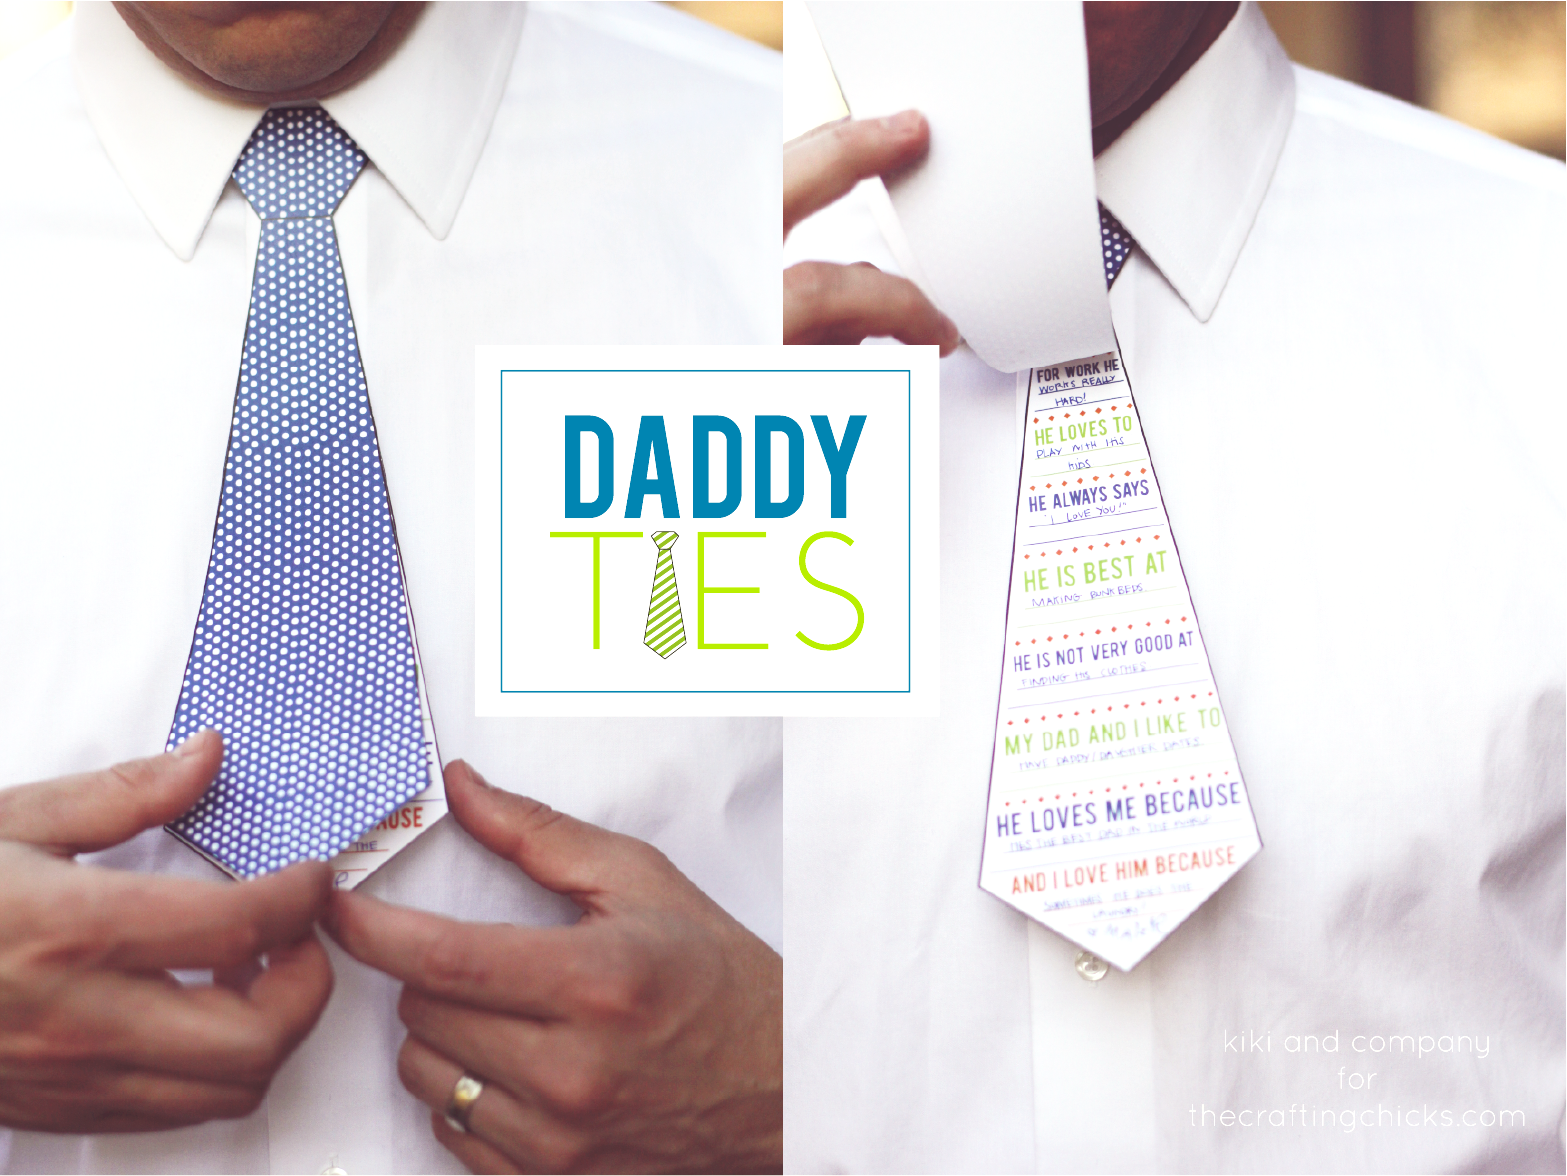 Free Printable Daddy Ties with Surveys - so cute! via @PagingSupermom